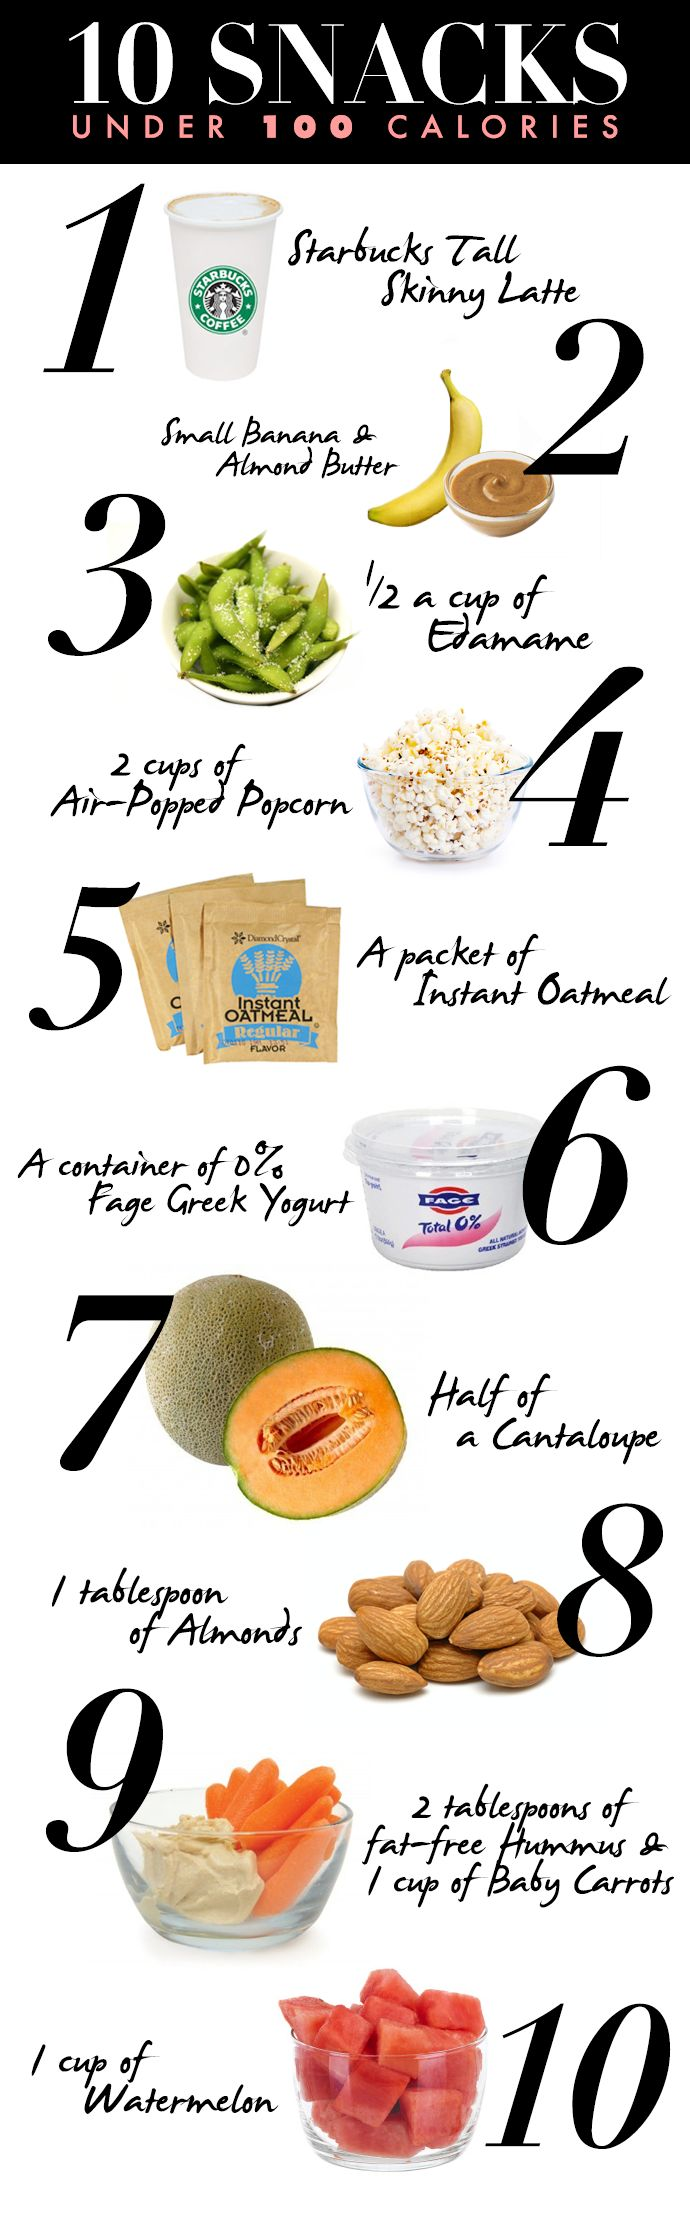 100-Calorie-Snacks-article